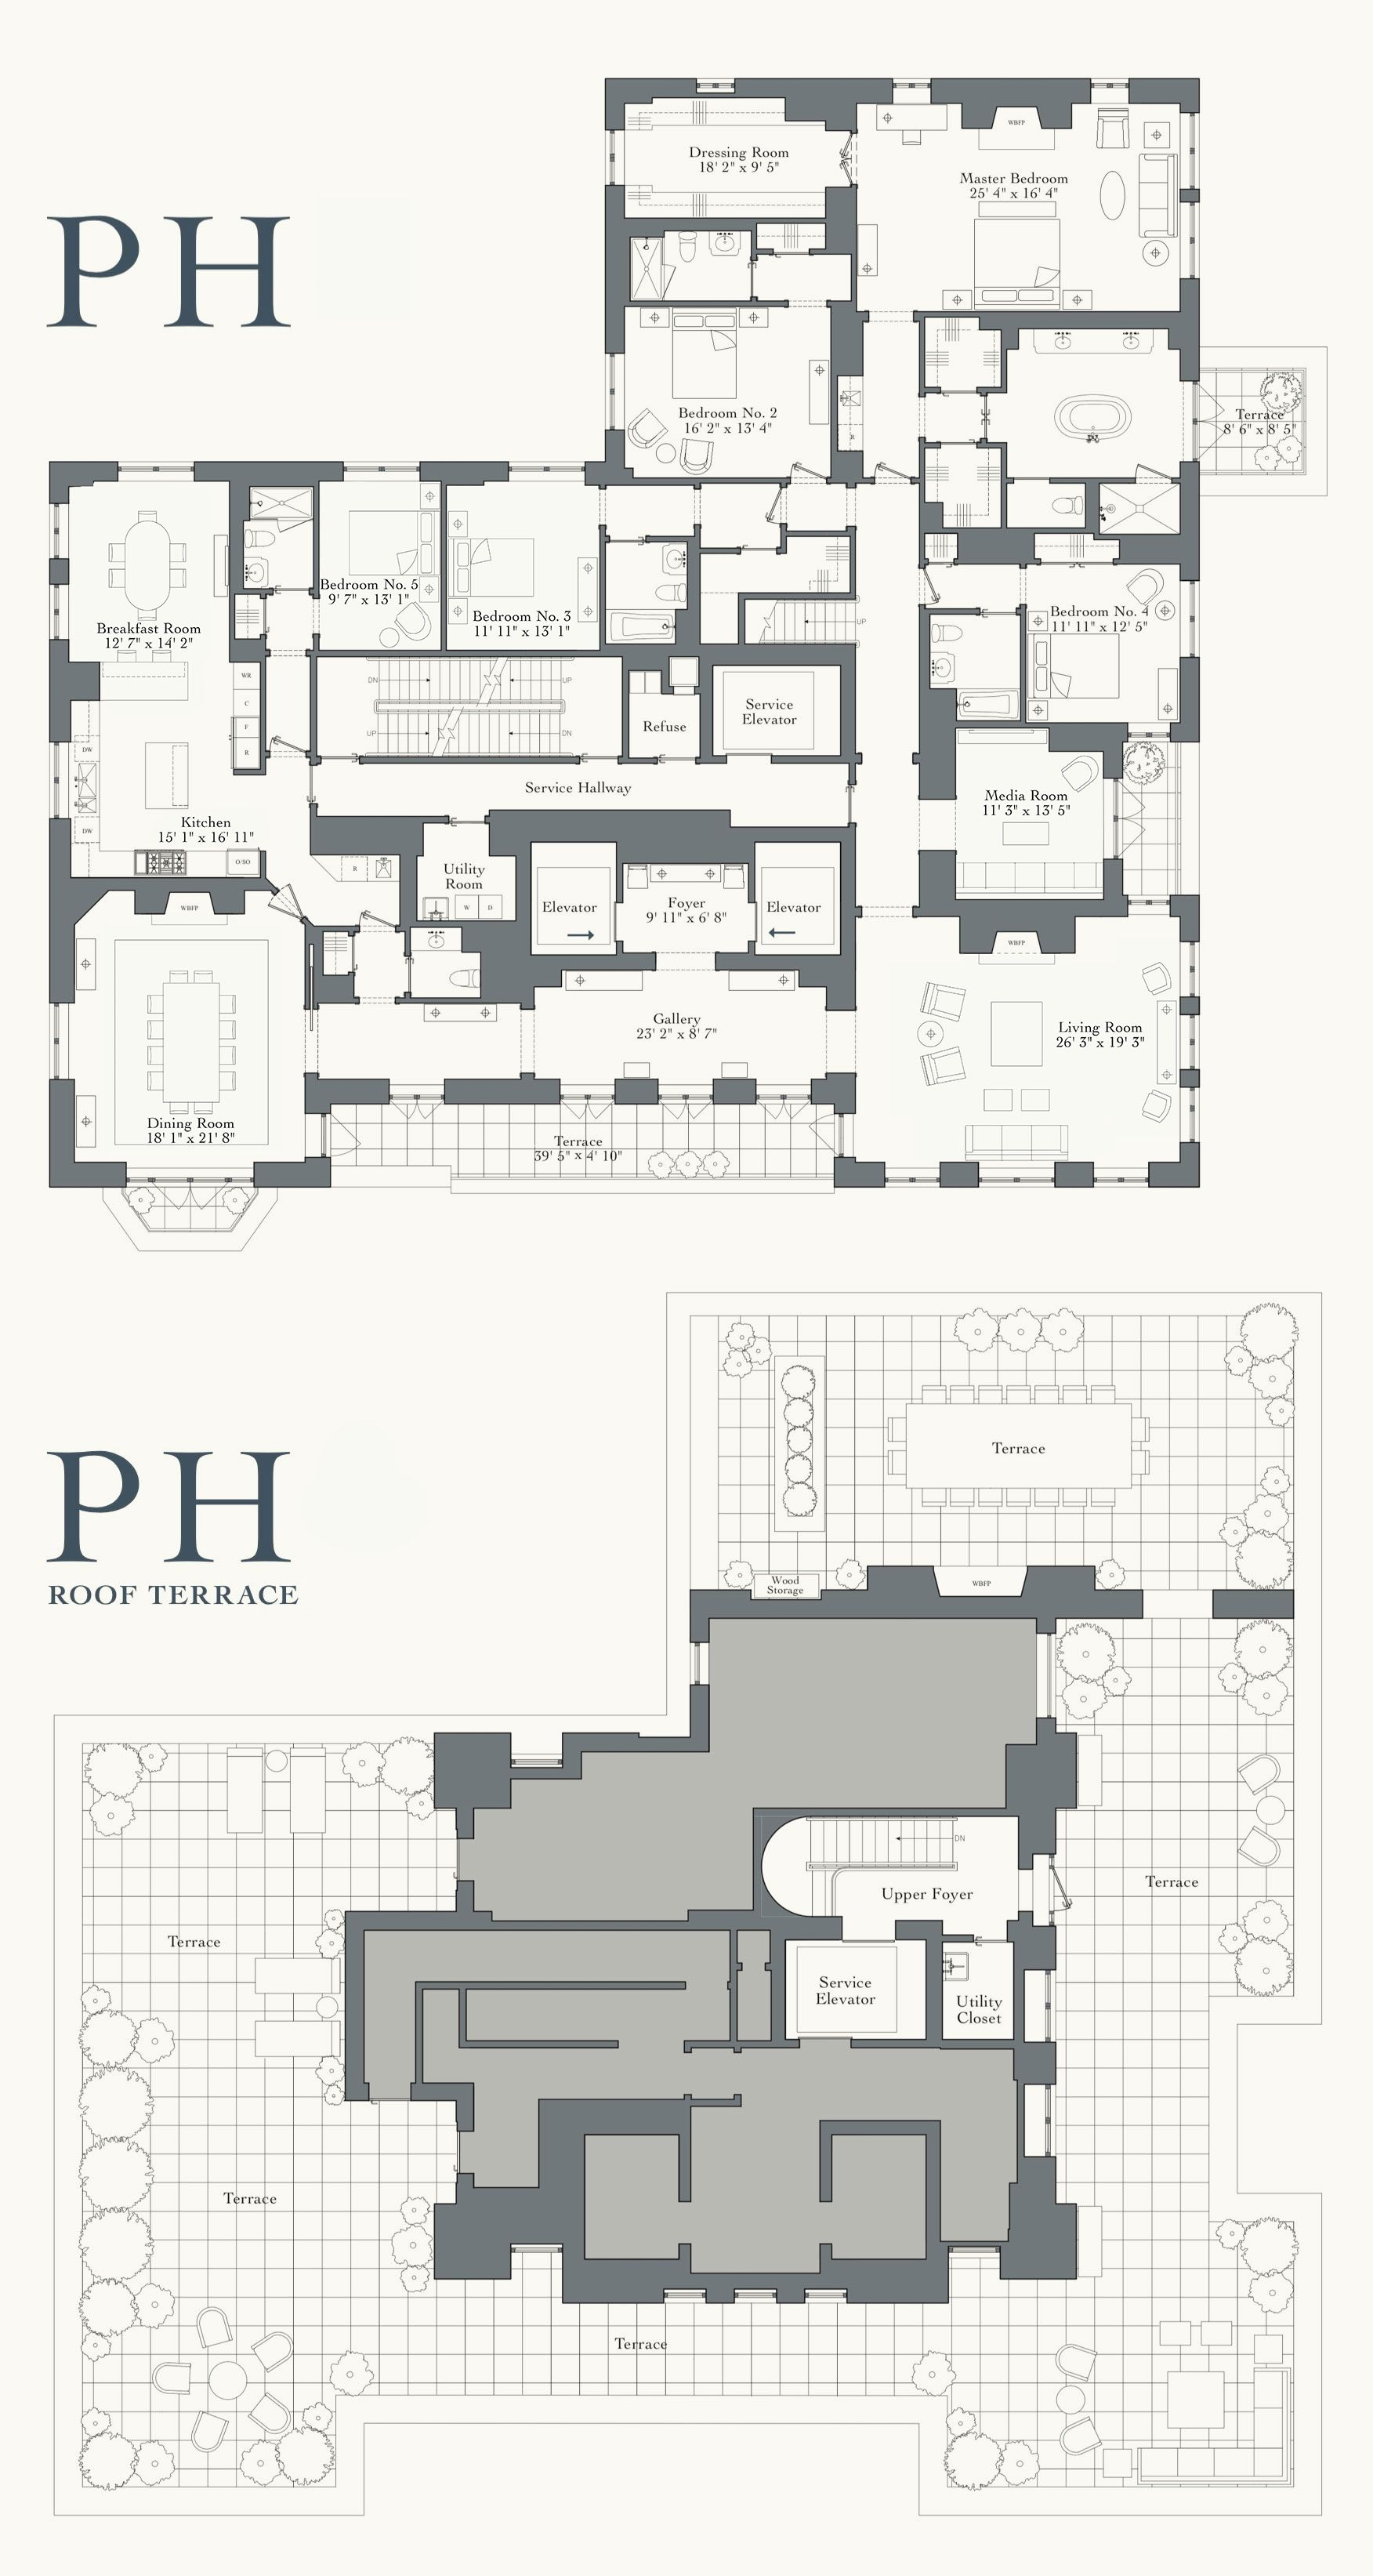 New Upper East Side Condos Penthouses 20 East End Avenue Penthouses Penthouse Apartment Floor Plan Pent House Condo Floor Plans